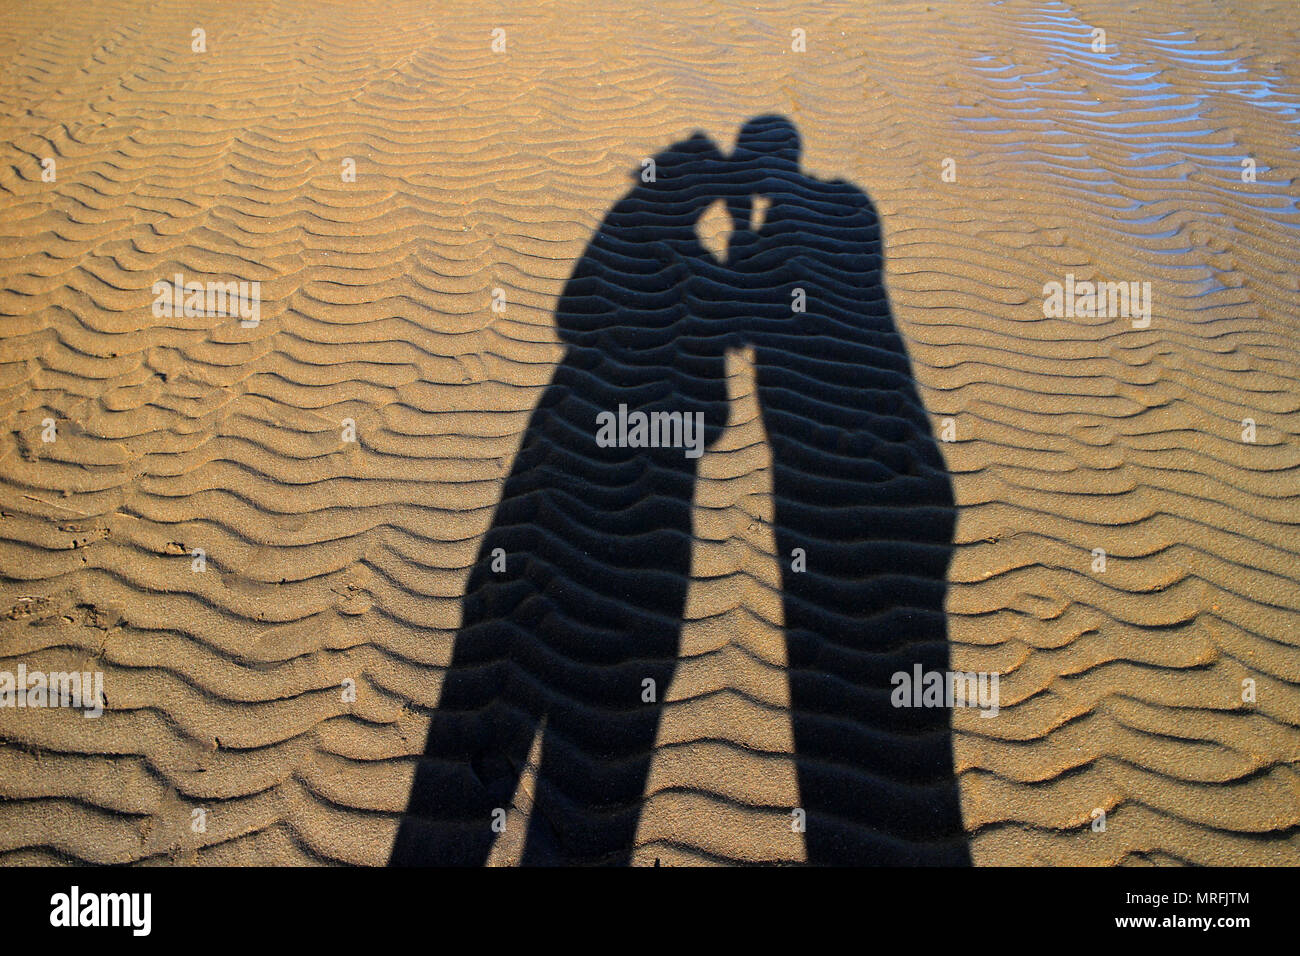 Shadow of two people kissing each other on beach. - Stock Image